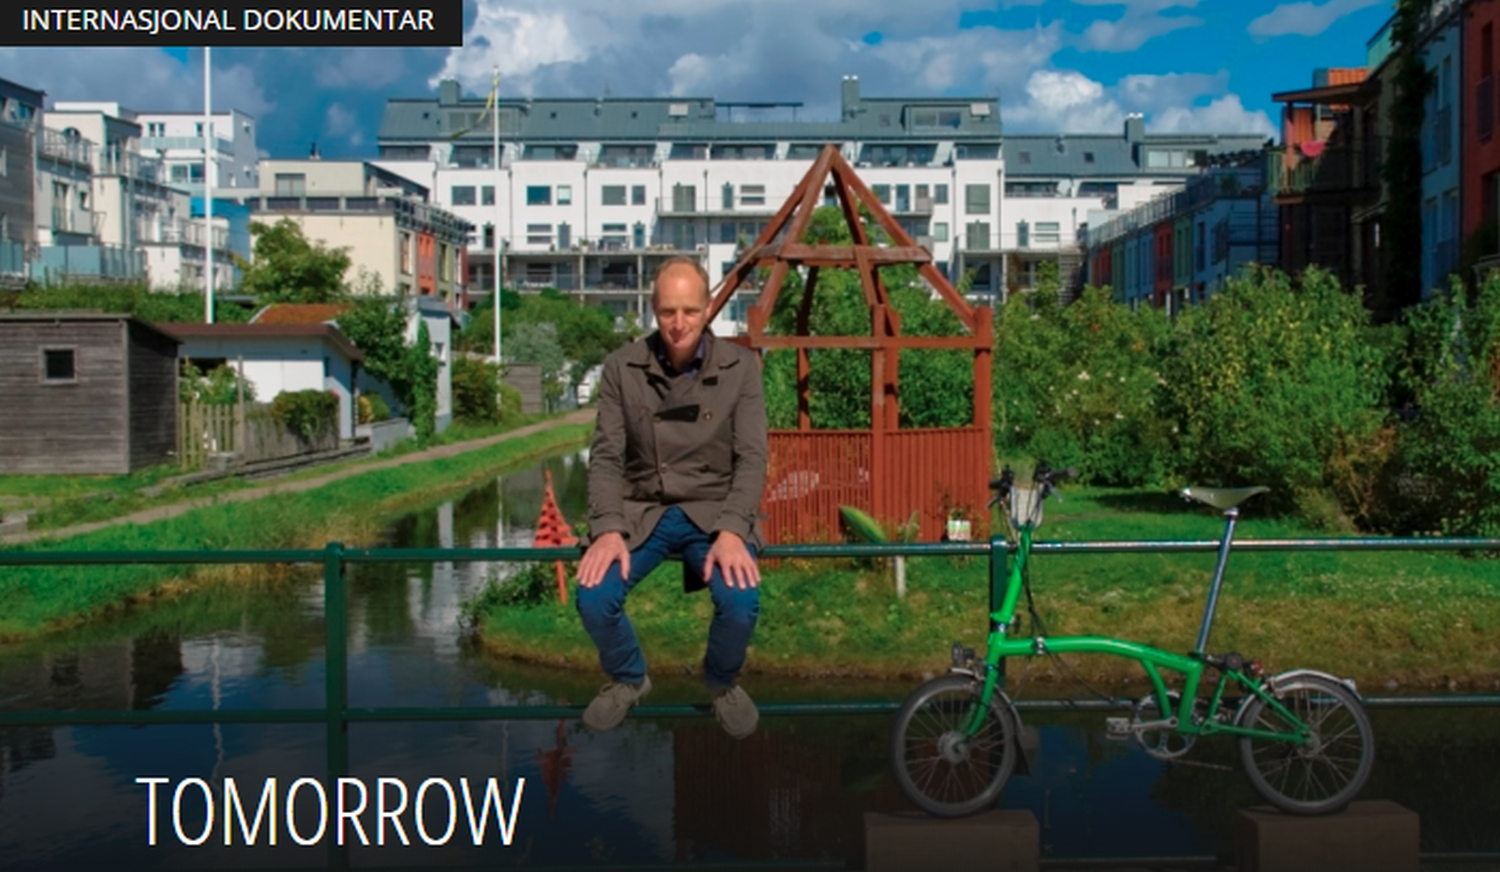 "Innsenderen oppfordrer til å se filmen ""Tomorrow"". Foto/screenshot: Biff.no"